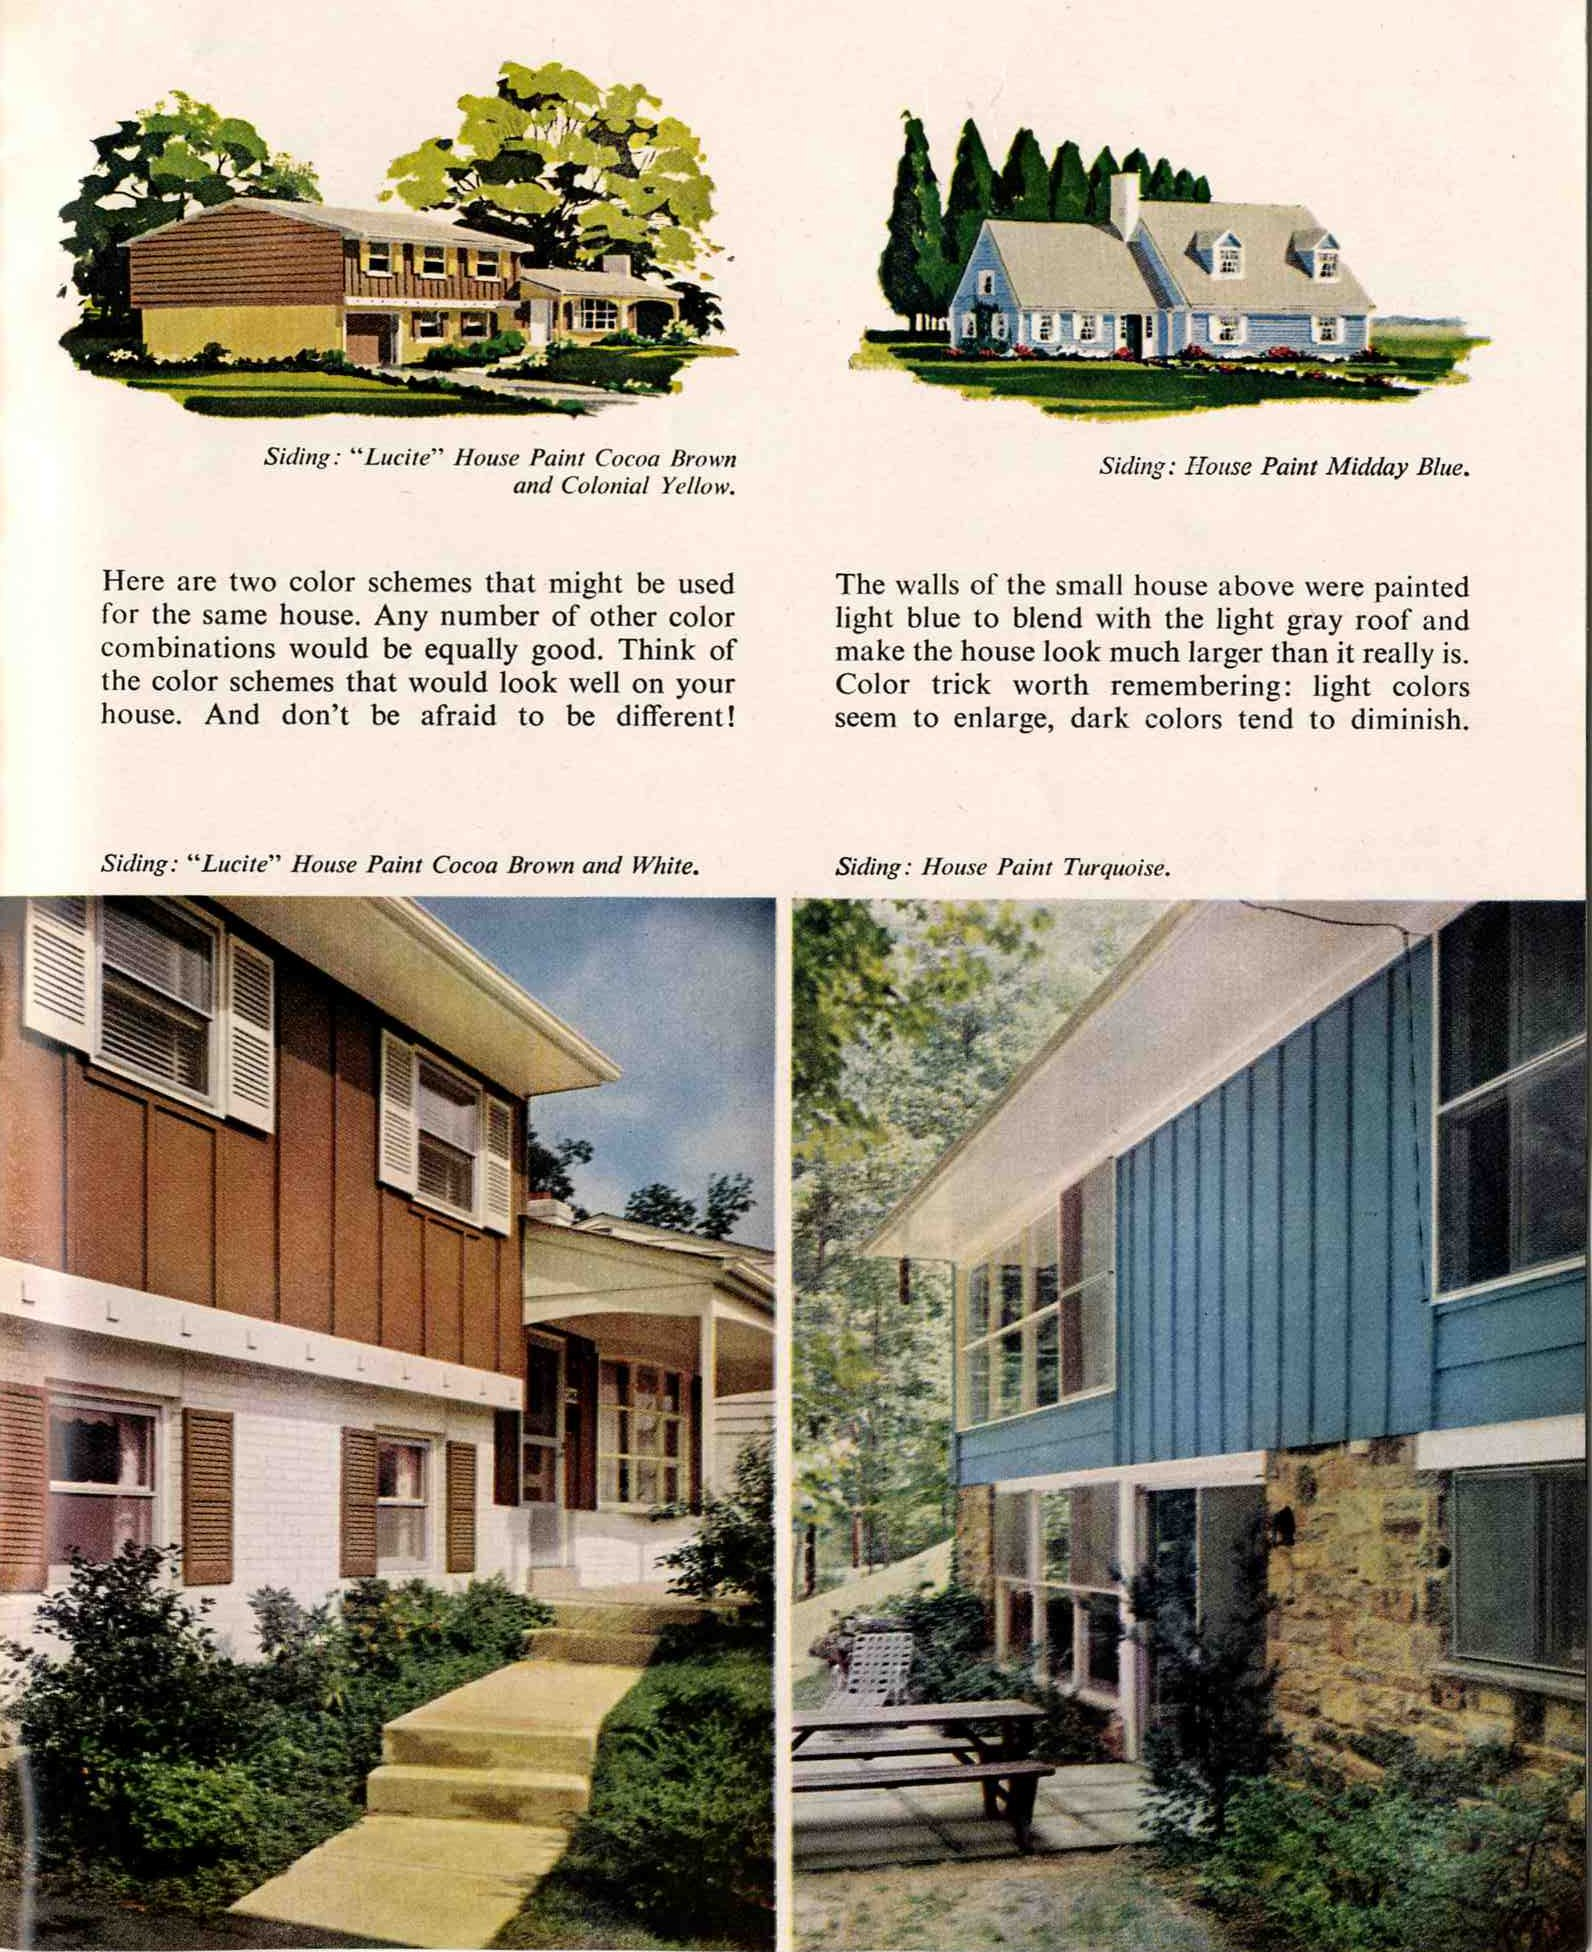 Broadmoor Neighborhood News: Exterior colors for 1960 houses